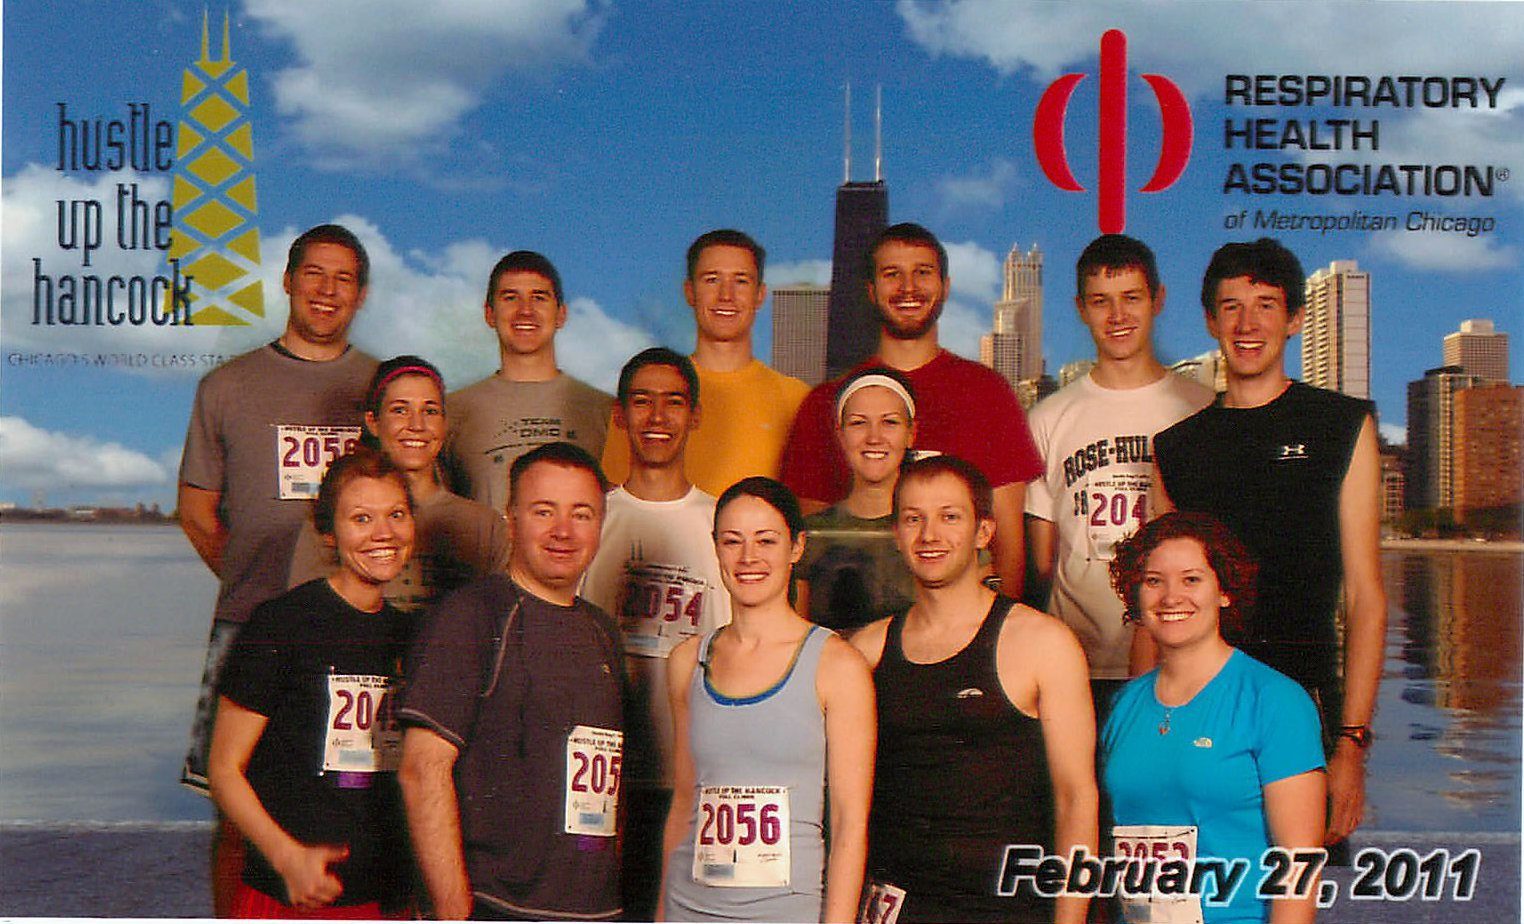 Team DMC Hustle Up the Hancock 2011